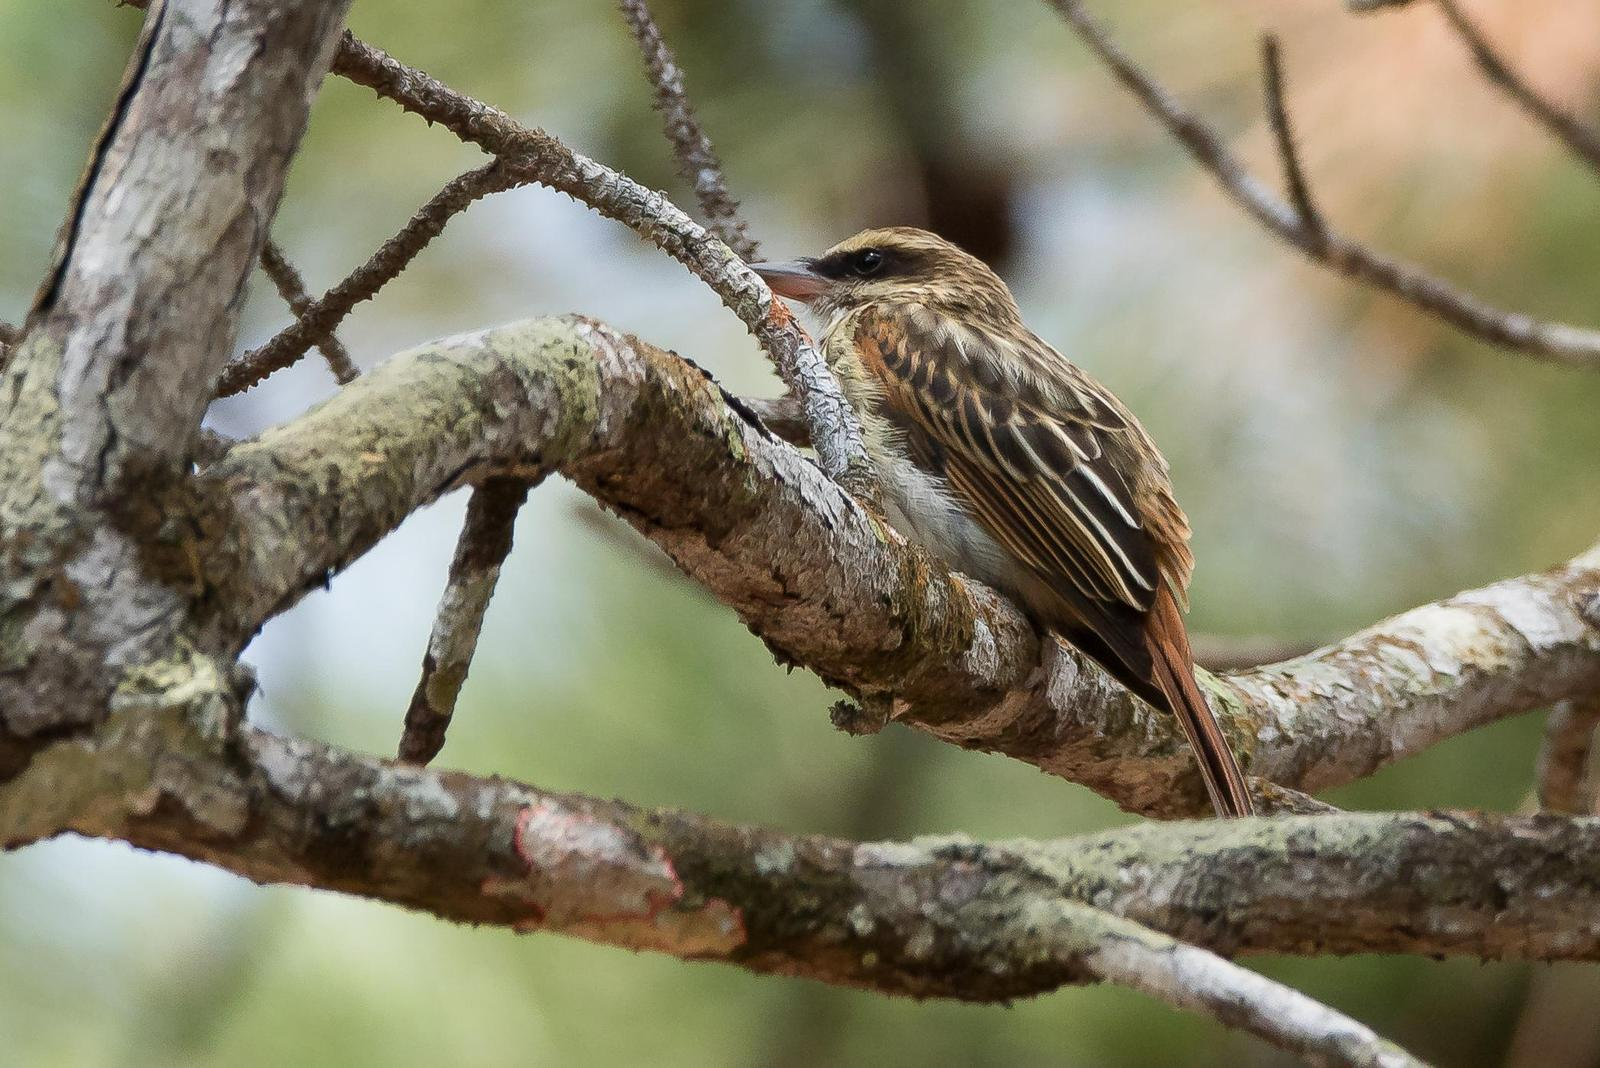 Streaked Flycatcher Photo by Gerald Hoekstra